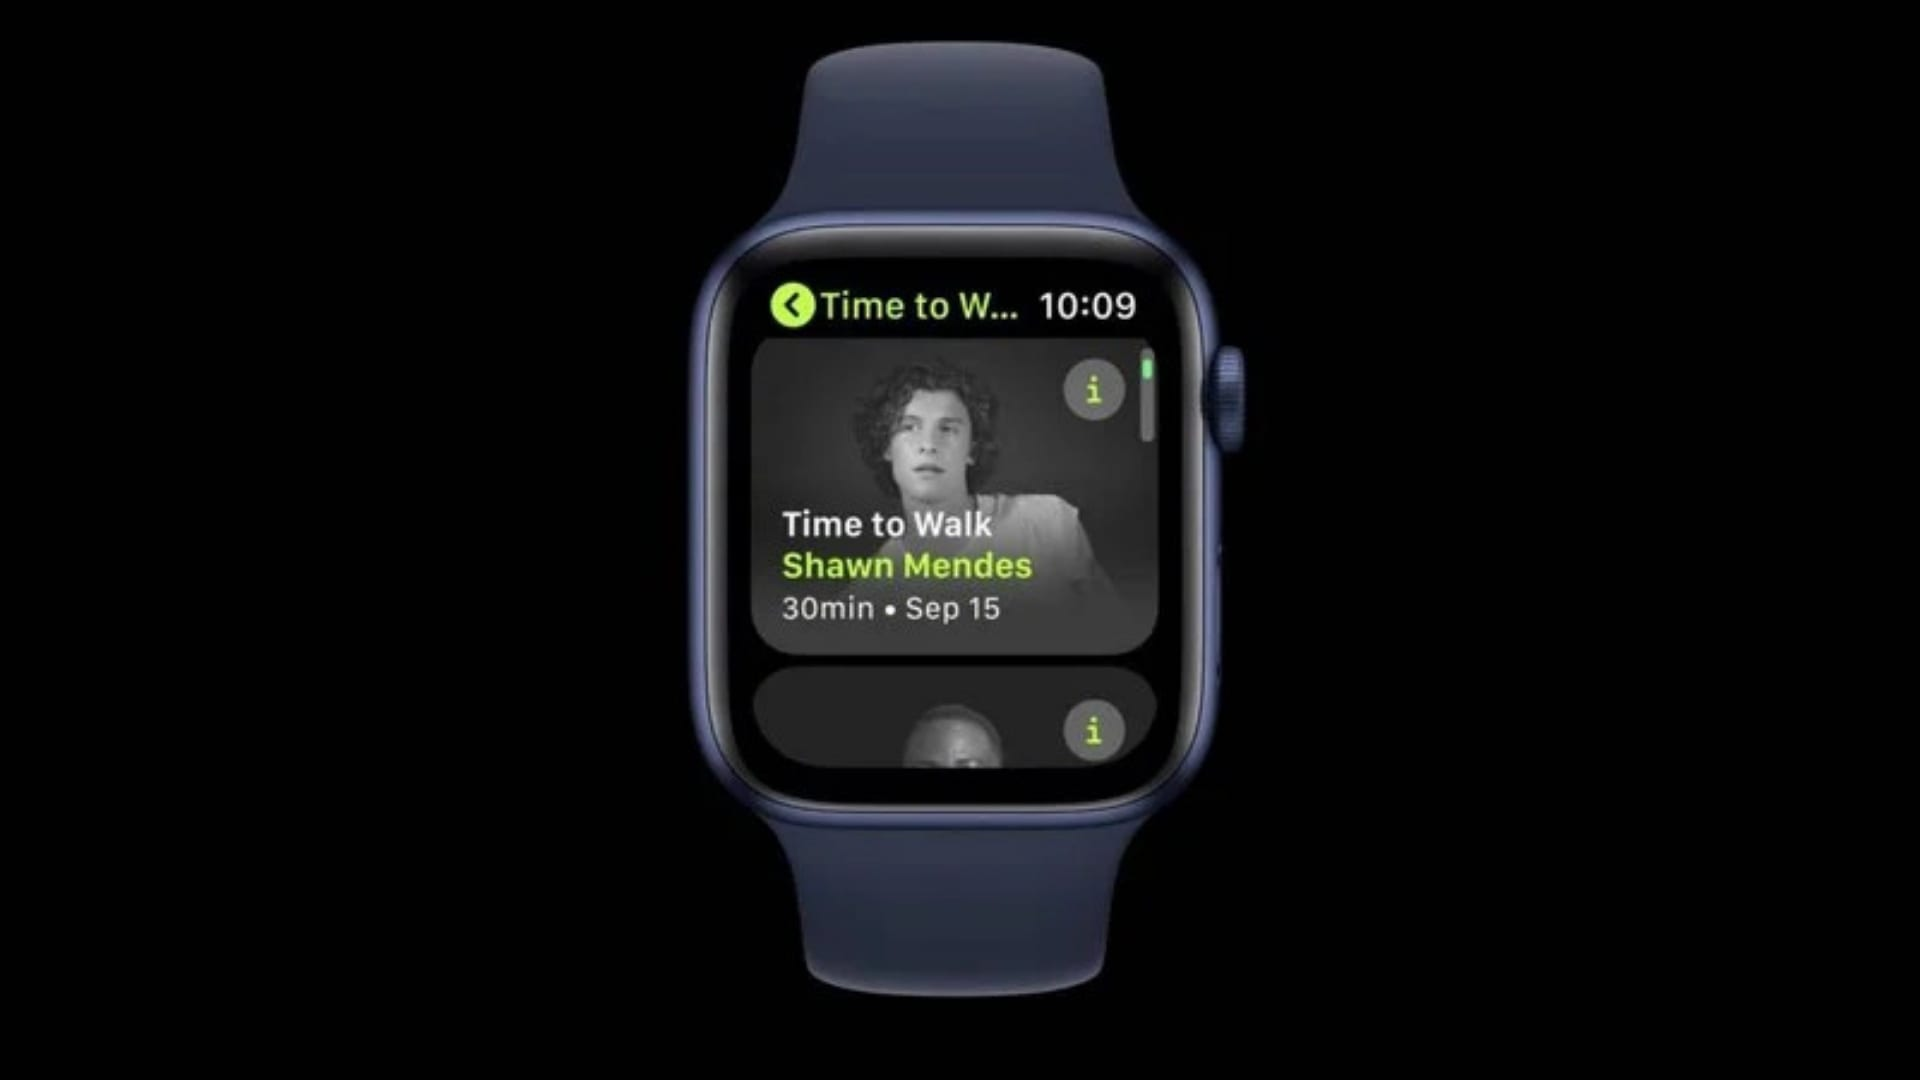 Apple Fitness+ potrebbe aggiornarsi con la feature Time to Walk